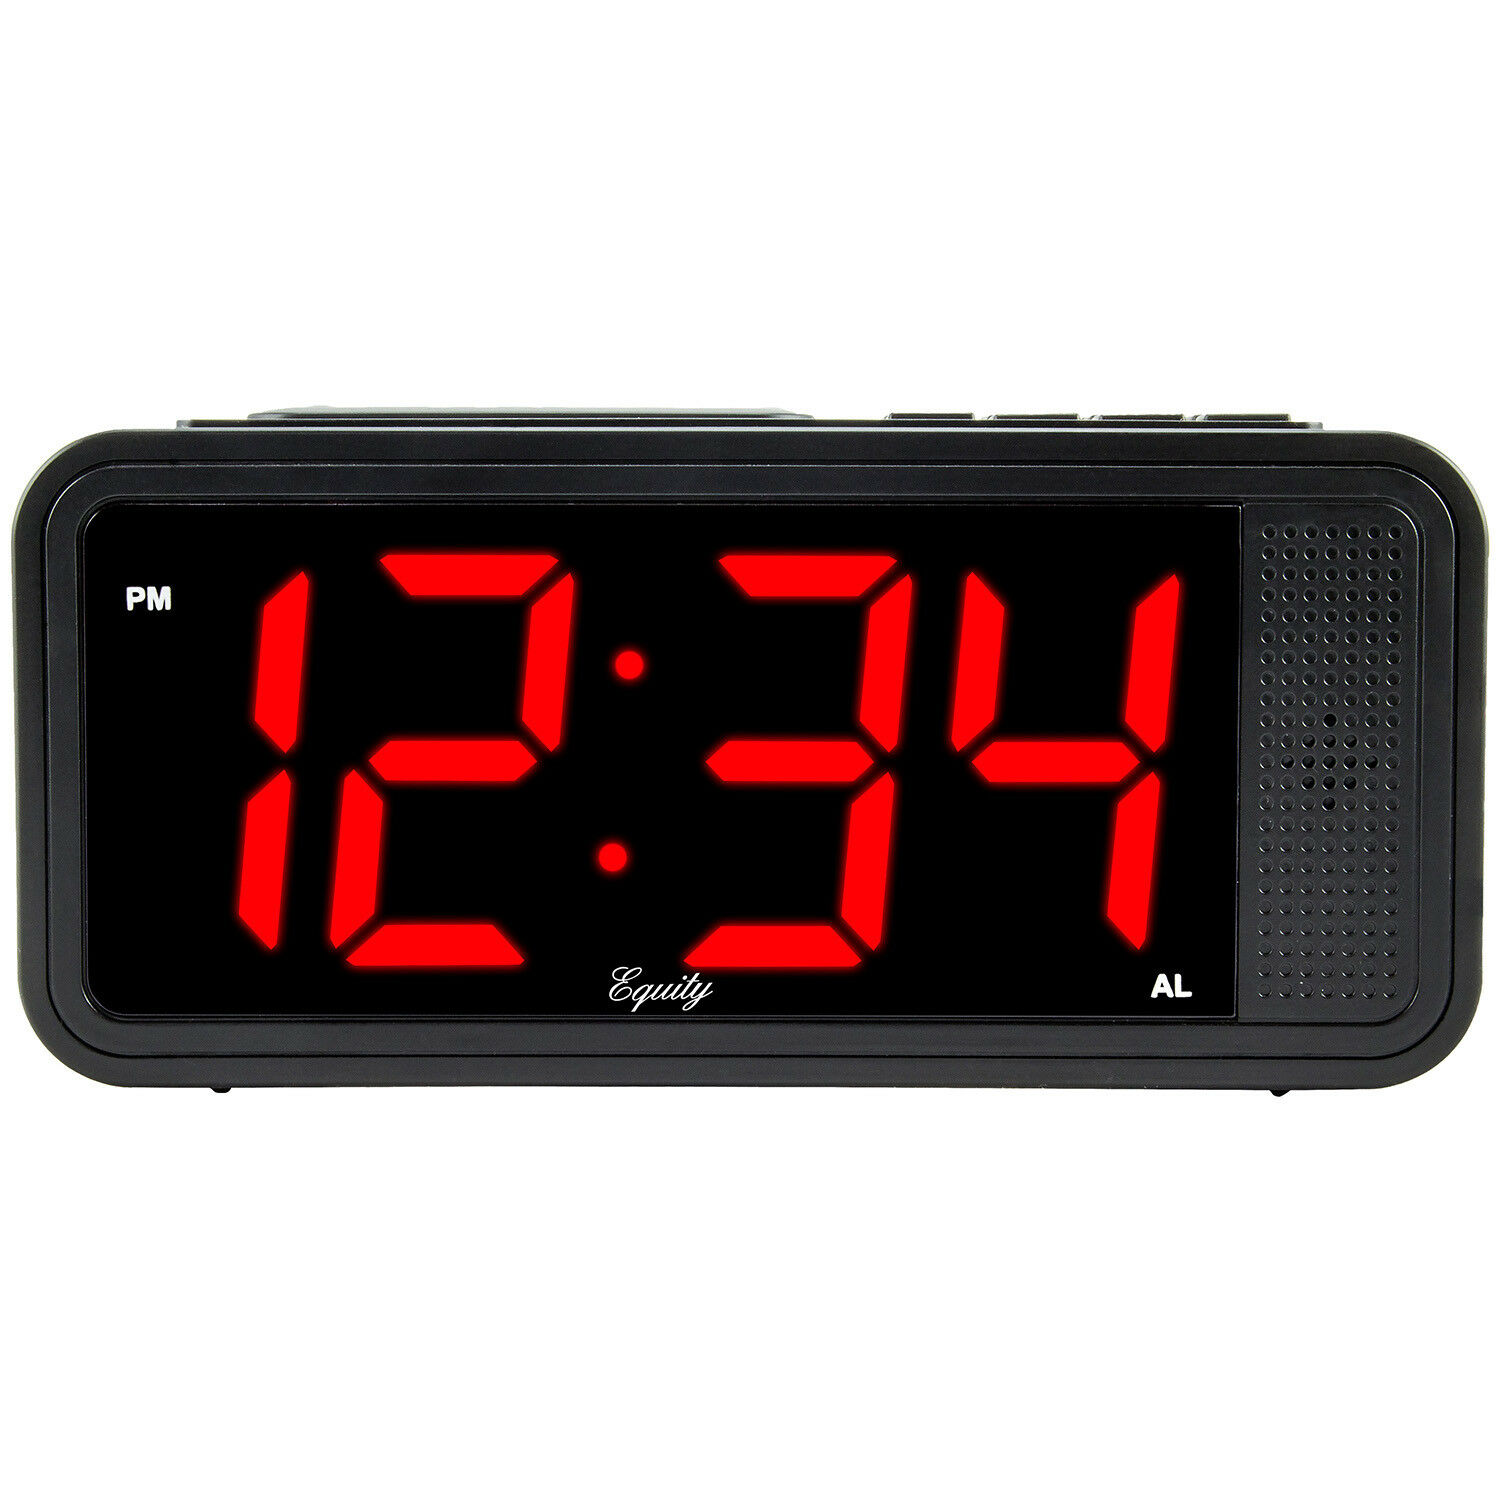 "75905 Equity by La Crosse 1.8"" LED Quick Set Alarm Clock wit"